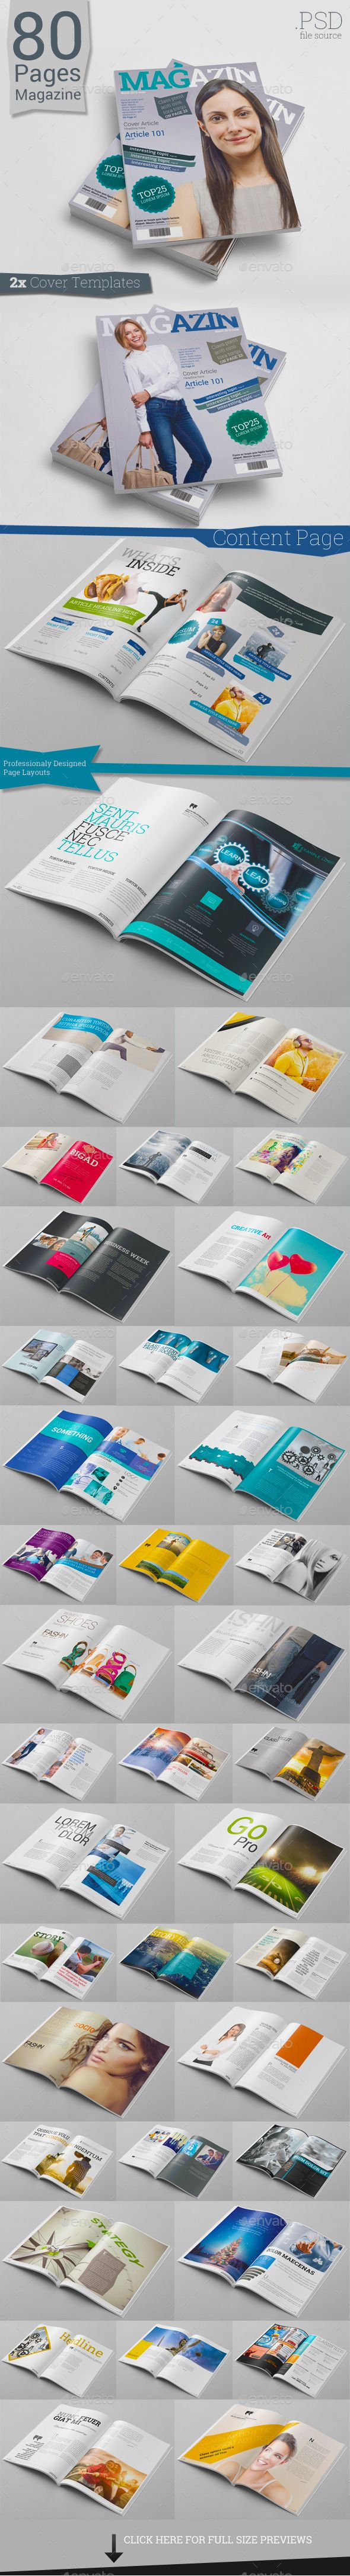 Mindblowing PSD 80 Pages Photoshop Magazine  Template • Only available here ➝ http://graphicriver.net/item/80-pages-photoshop-magazine/10470060?ref=pxcr